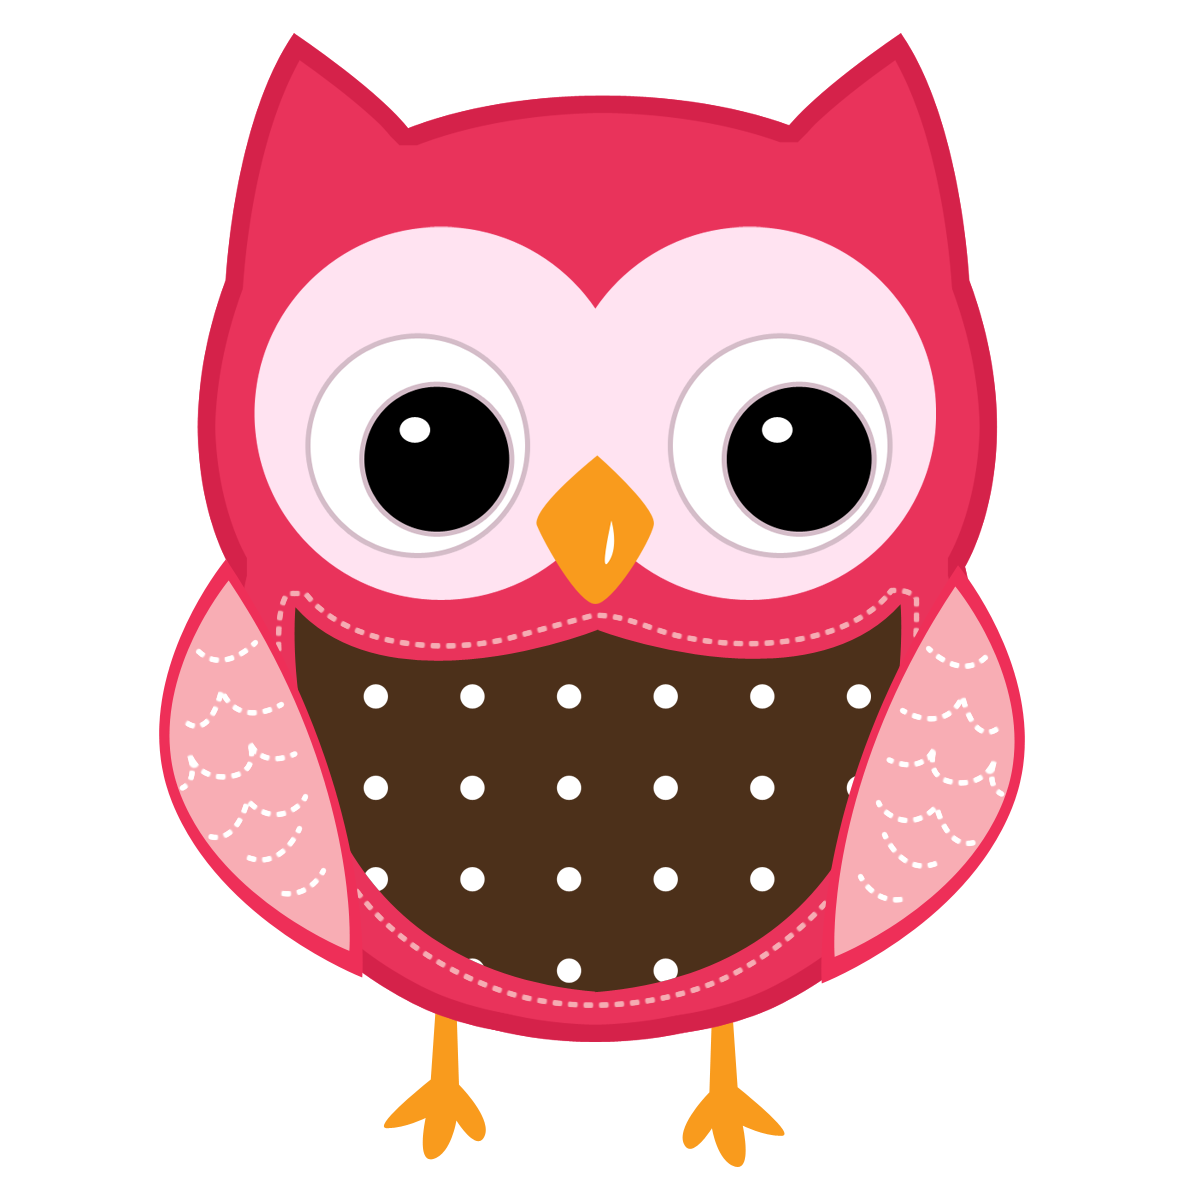 Free Owl Clipart & Owl Clip Art Images.